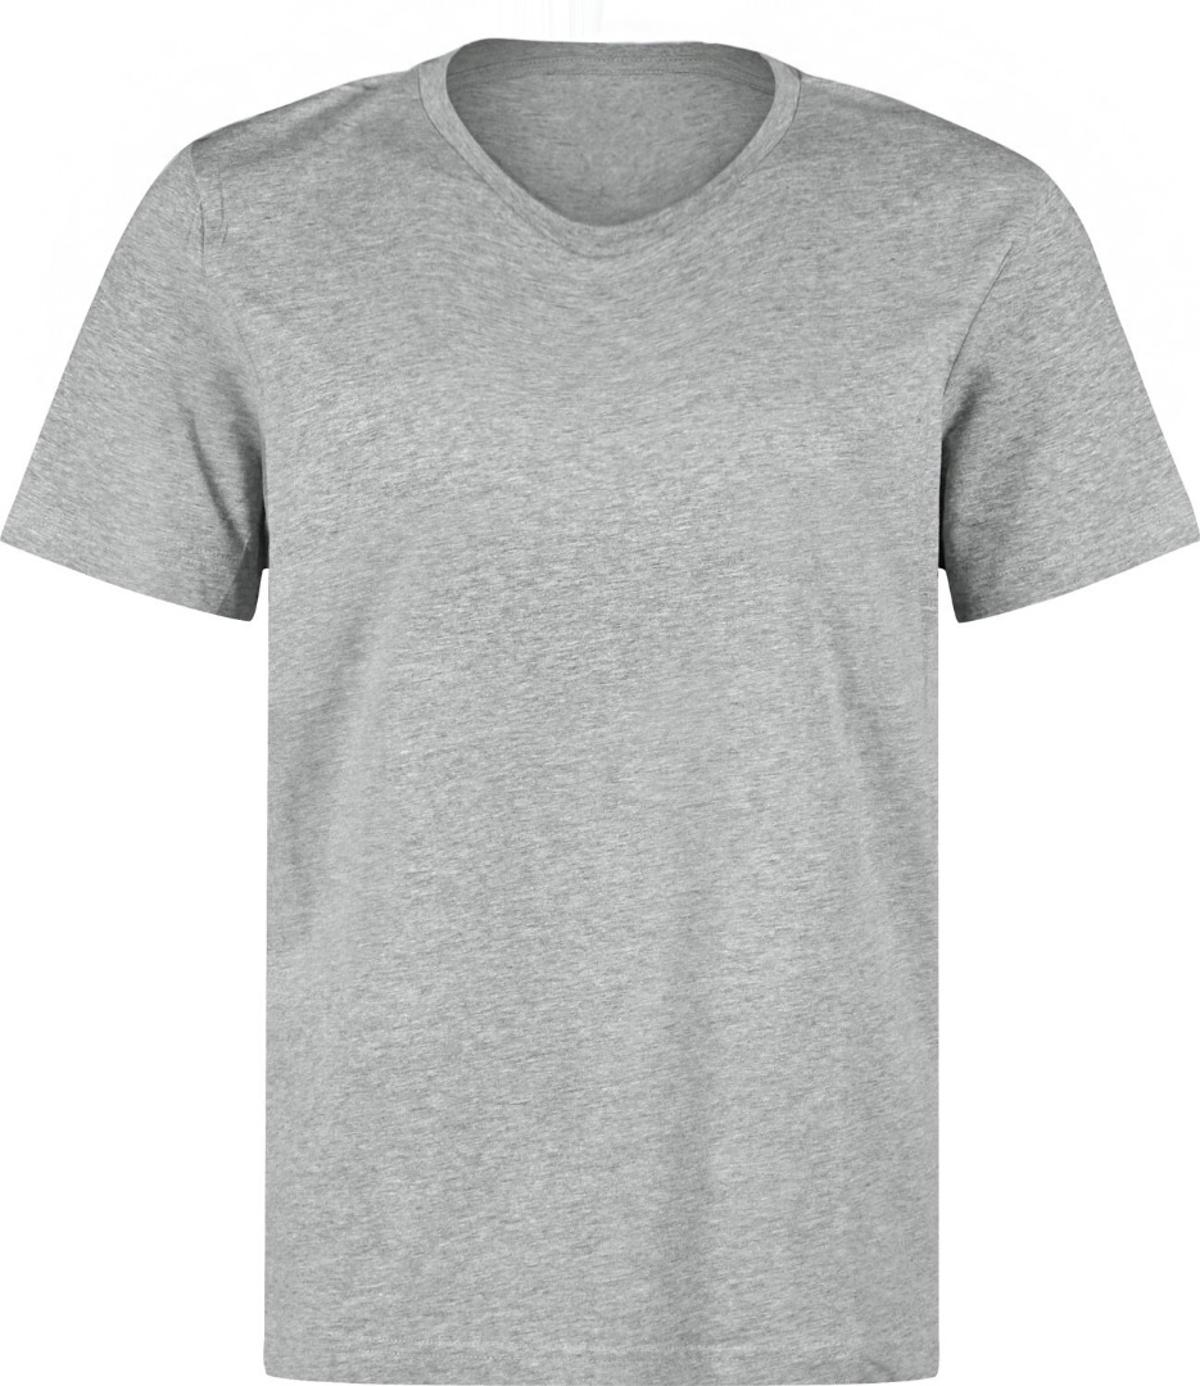 The Limitless Milk Shirt is claimed to be three times softer than regular cotton